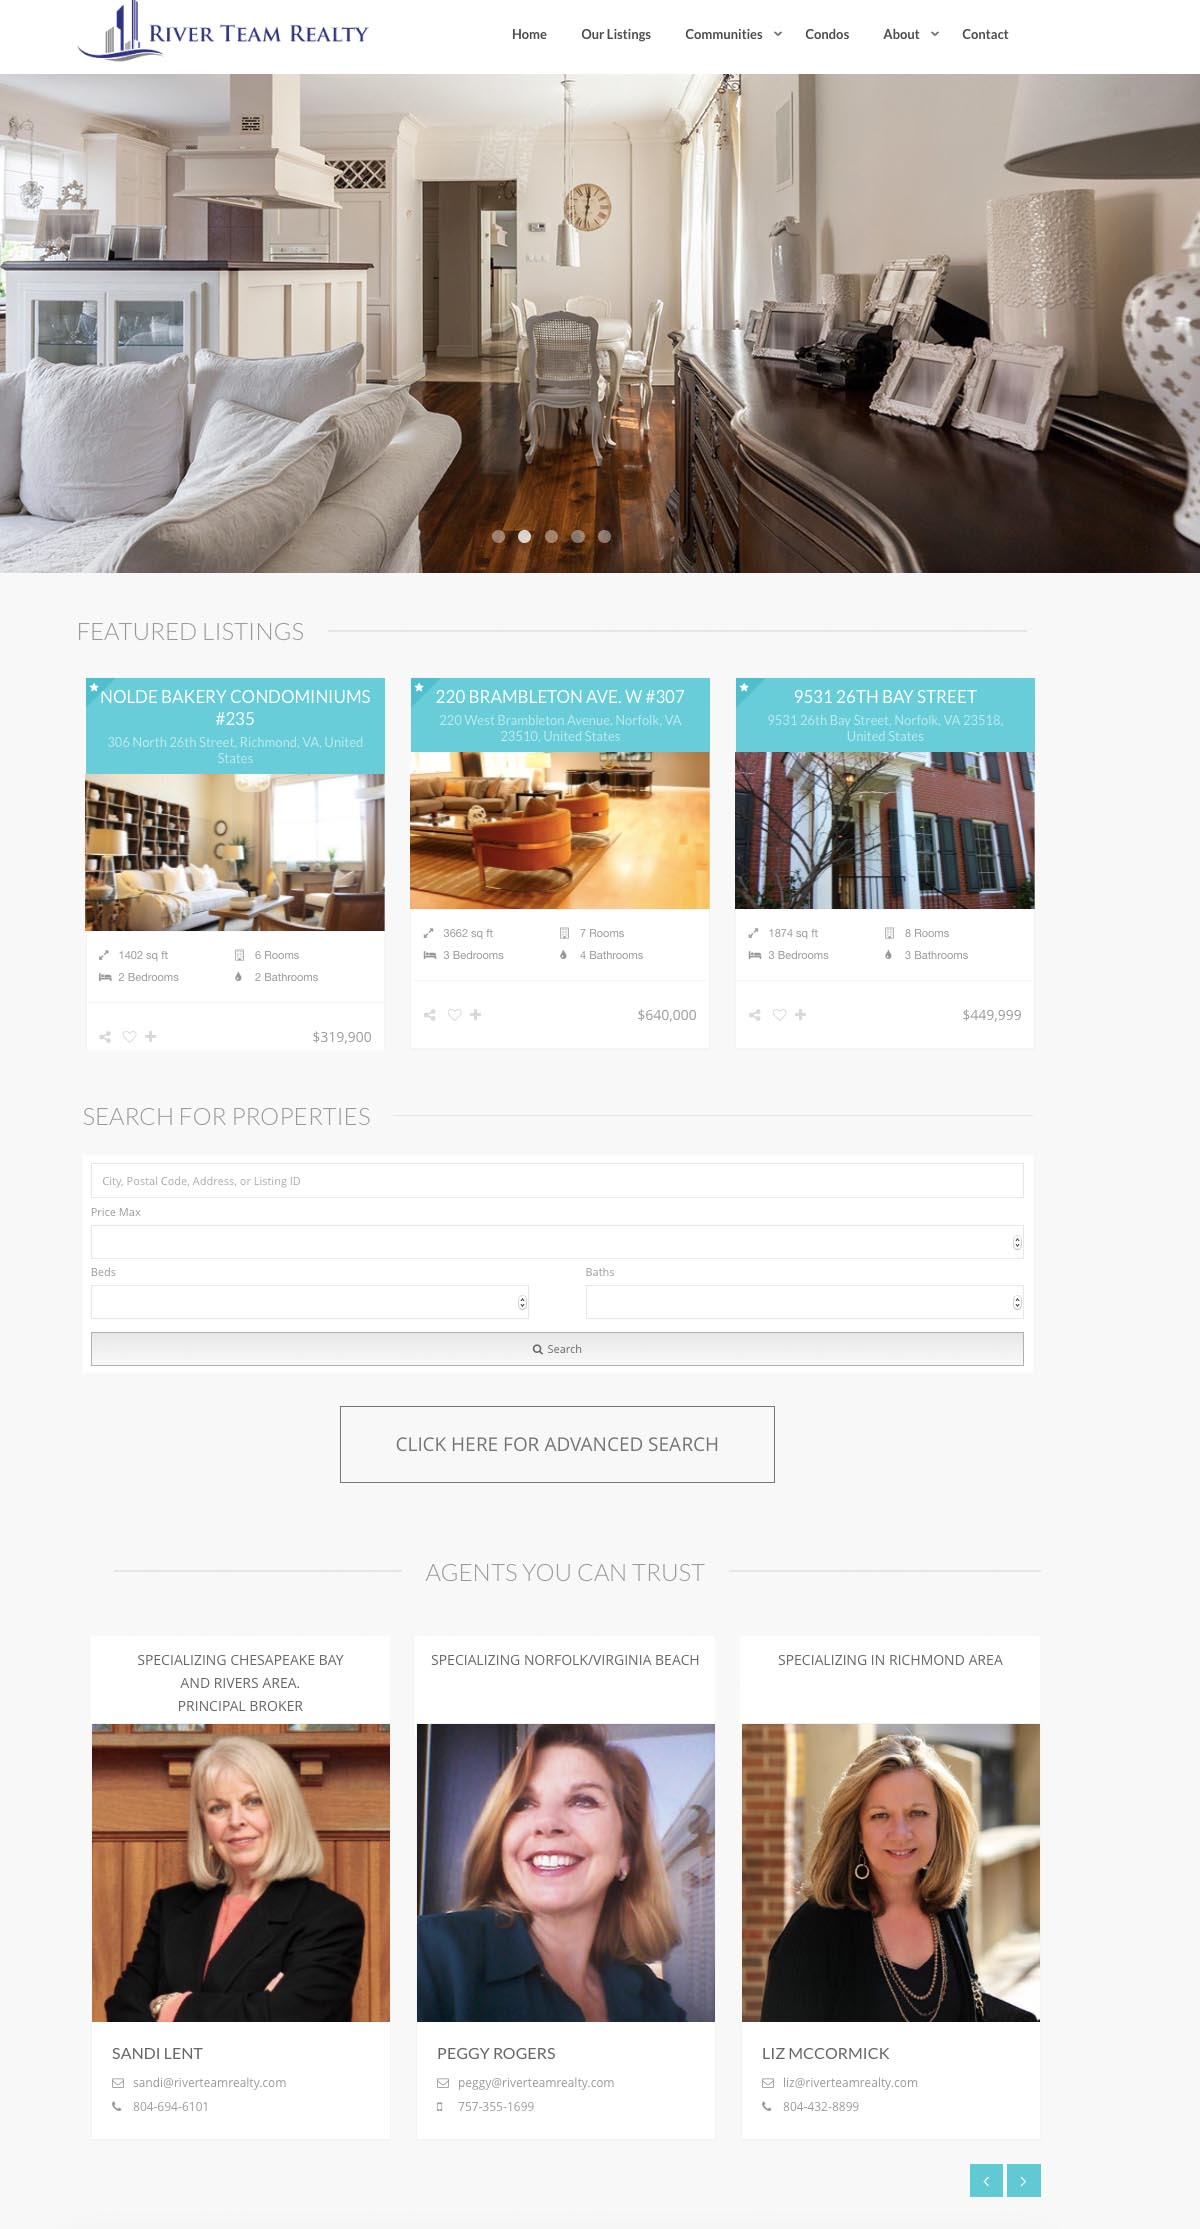 Website Design River Team Realty